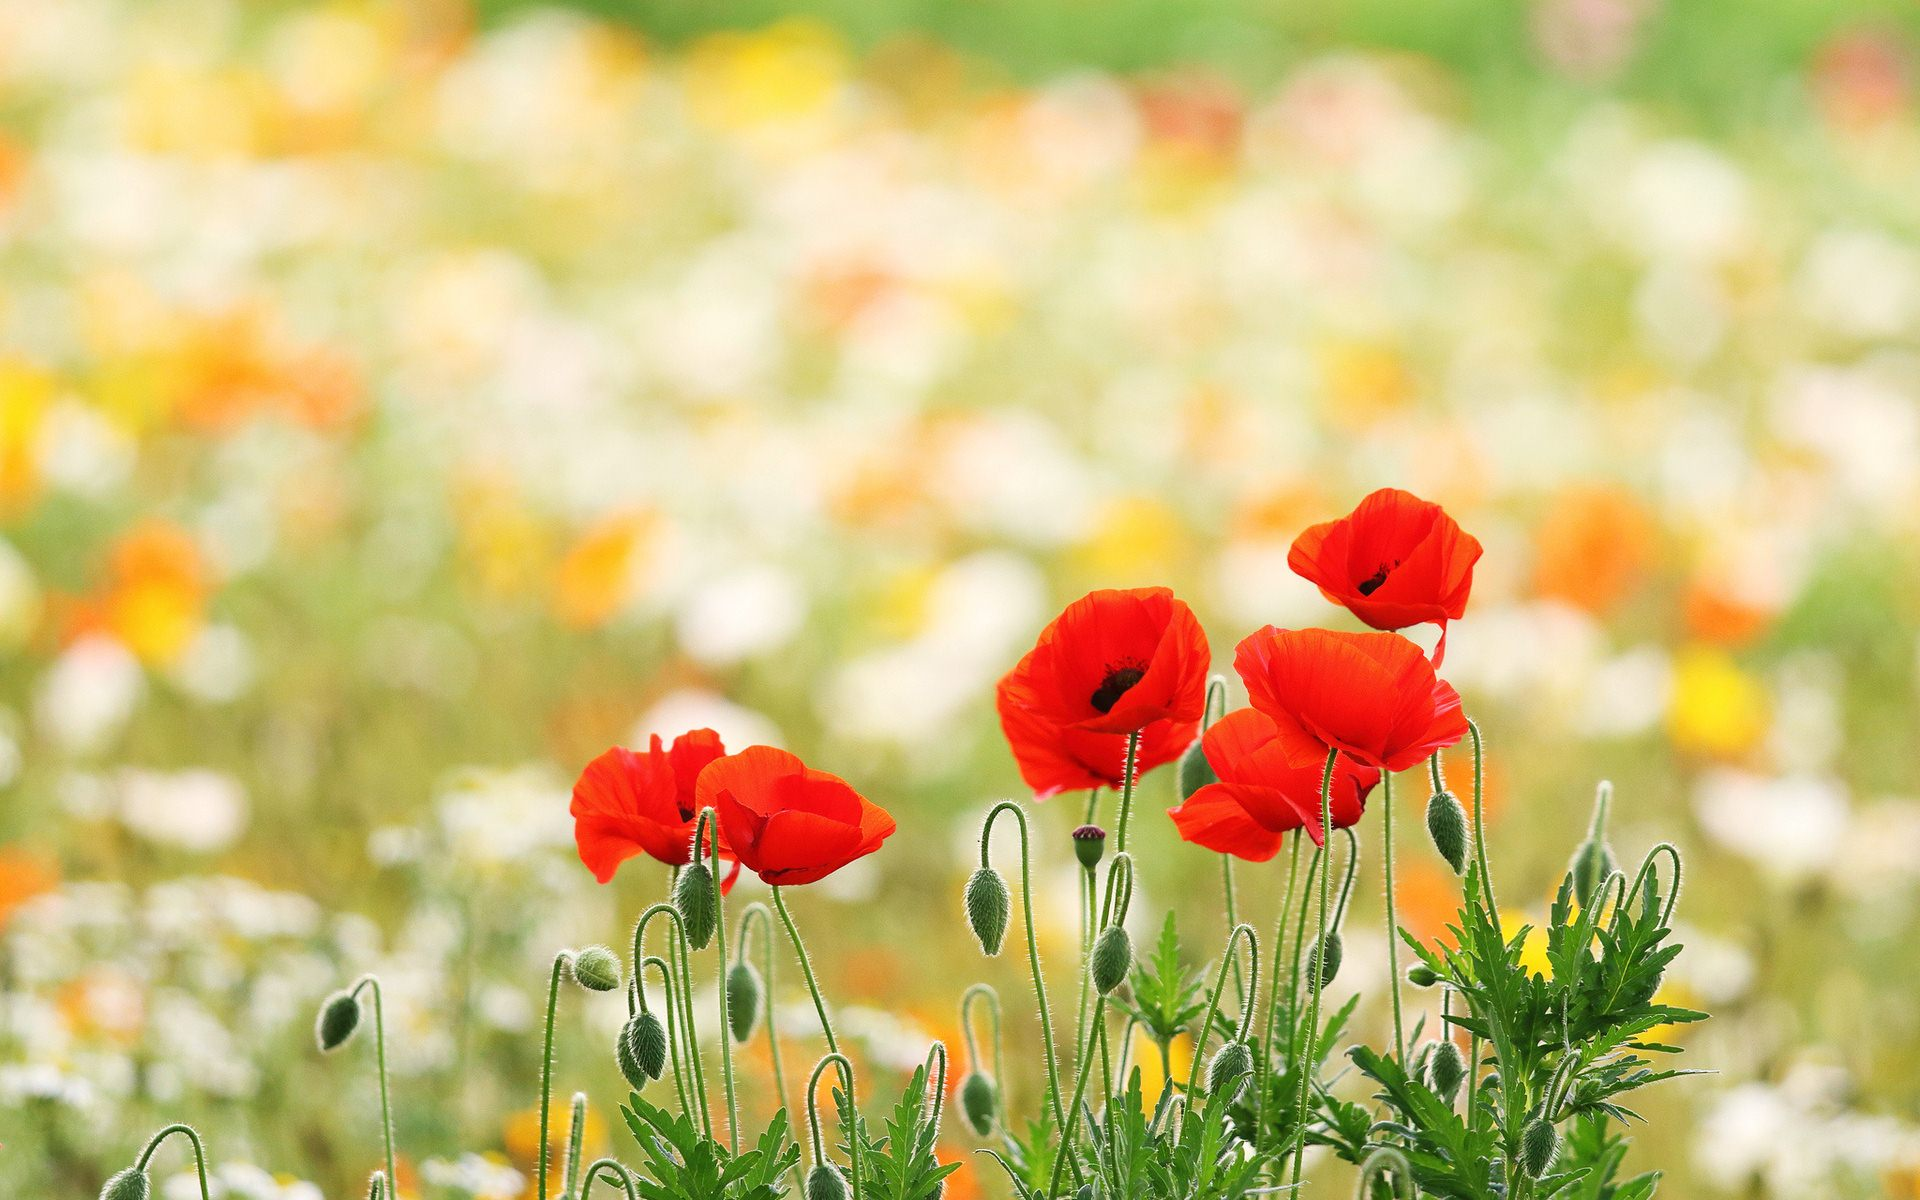 poppy field wallpapers 32147 1920x1200 px. Black Bedroom Furniture Sets. Home Design Ideas